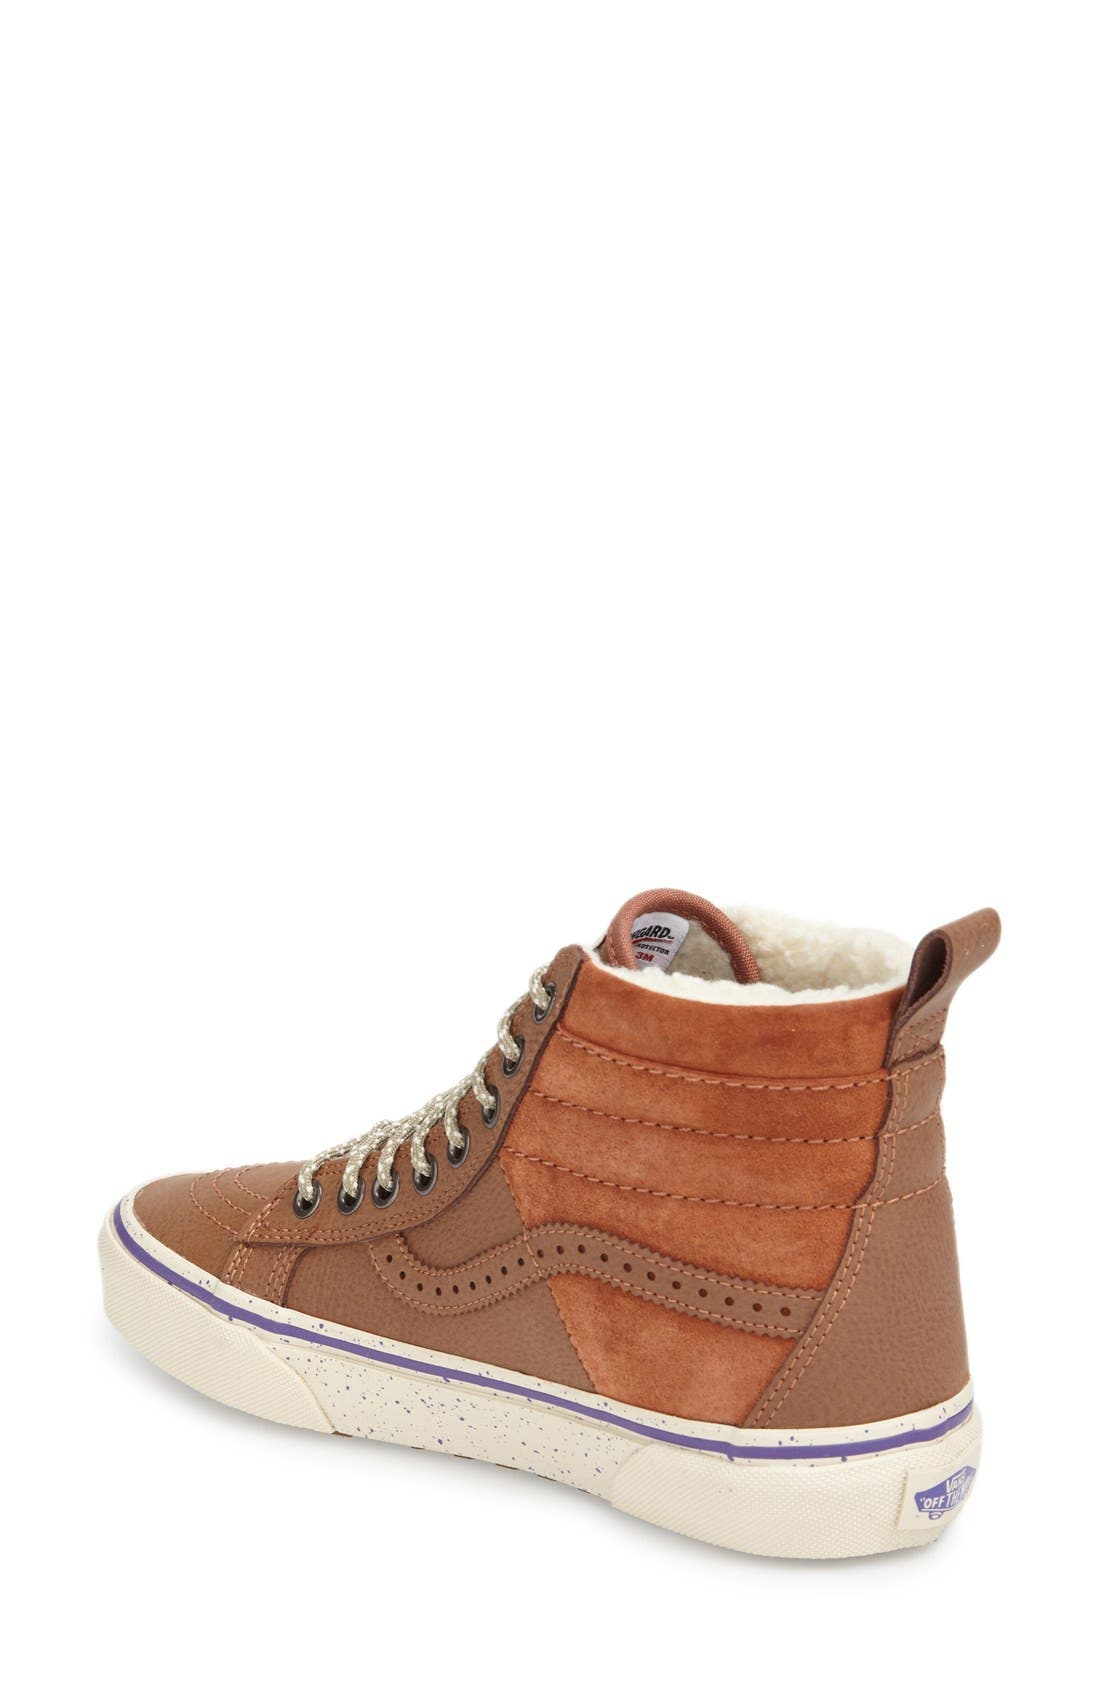 VANS,                             Hana Beaman – SK8-Hi 46 MTE Water Resistant Sneaker,                             Alternate thumbnail 3, color,                             210